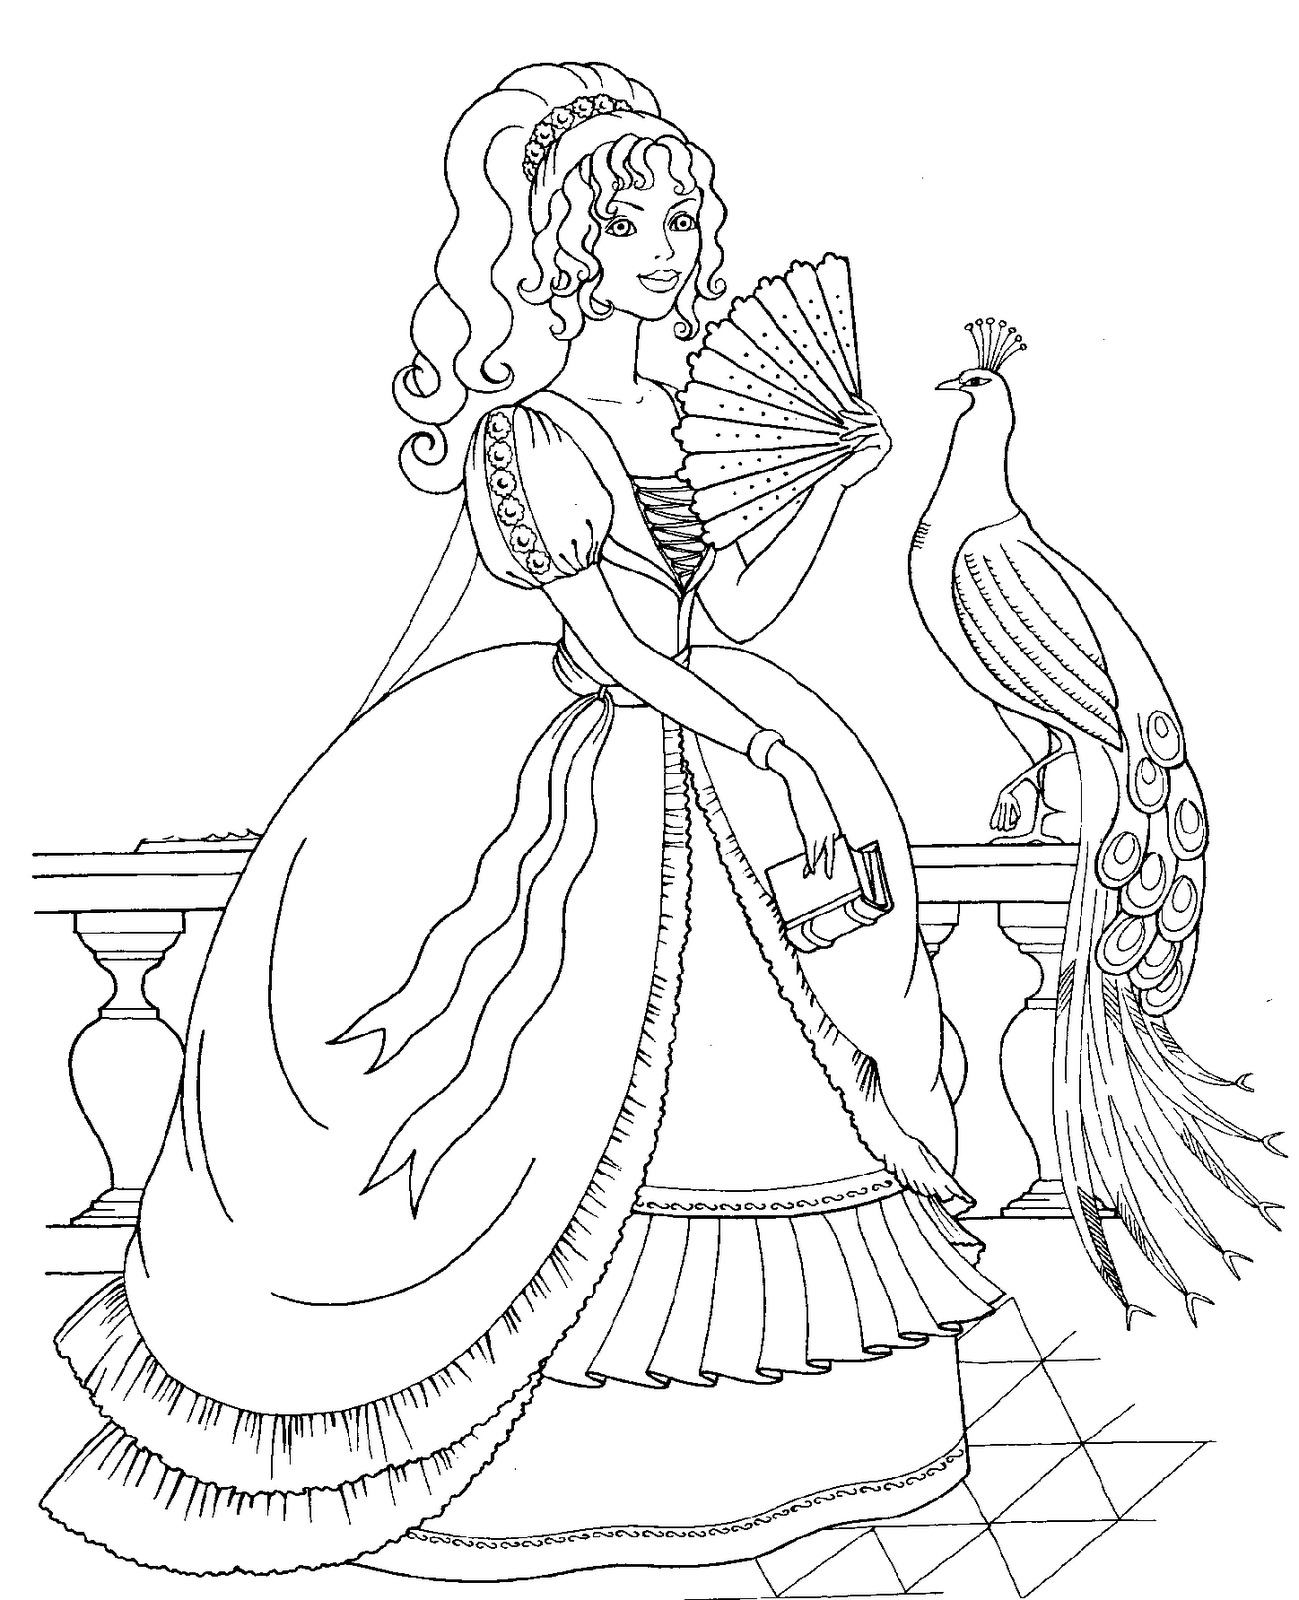 Realistic Princess Coloring Pages at GetColorings.com | Free ...